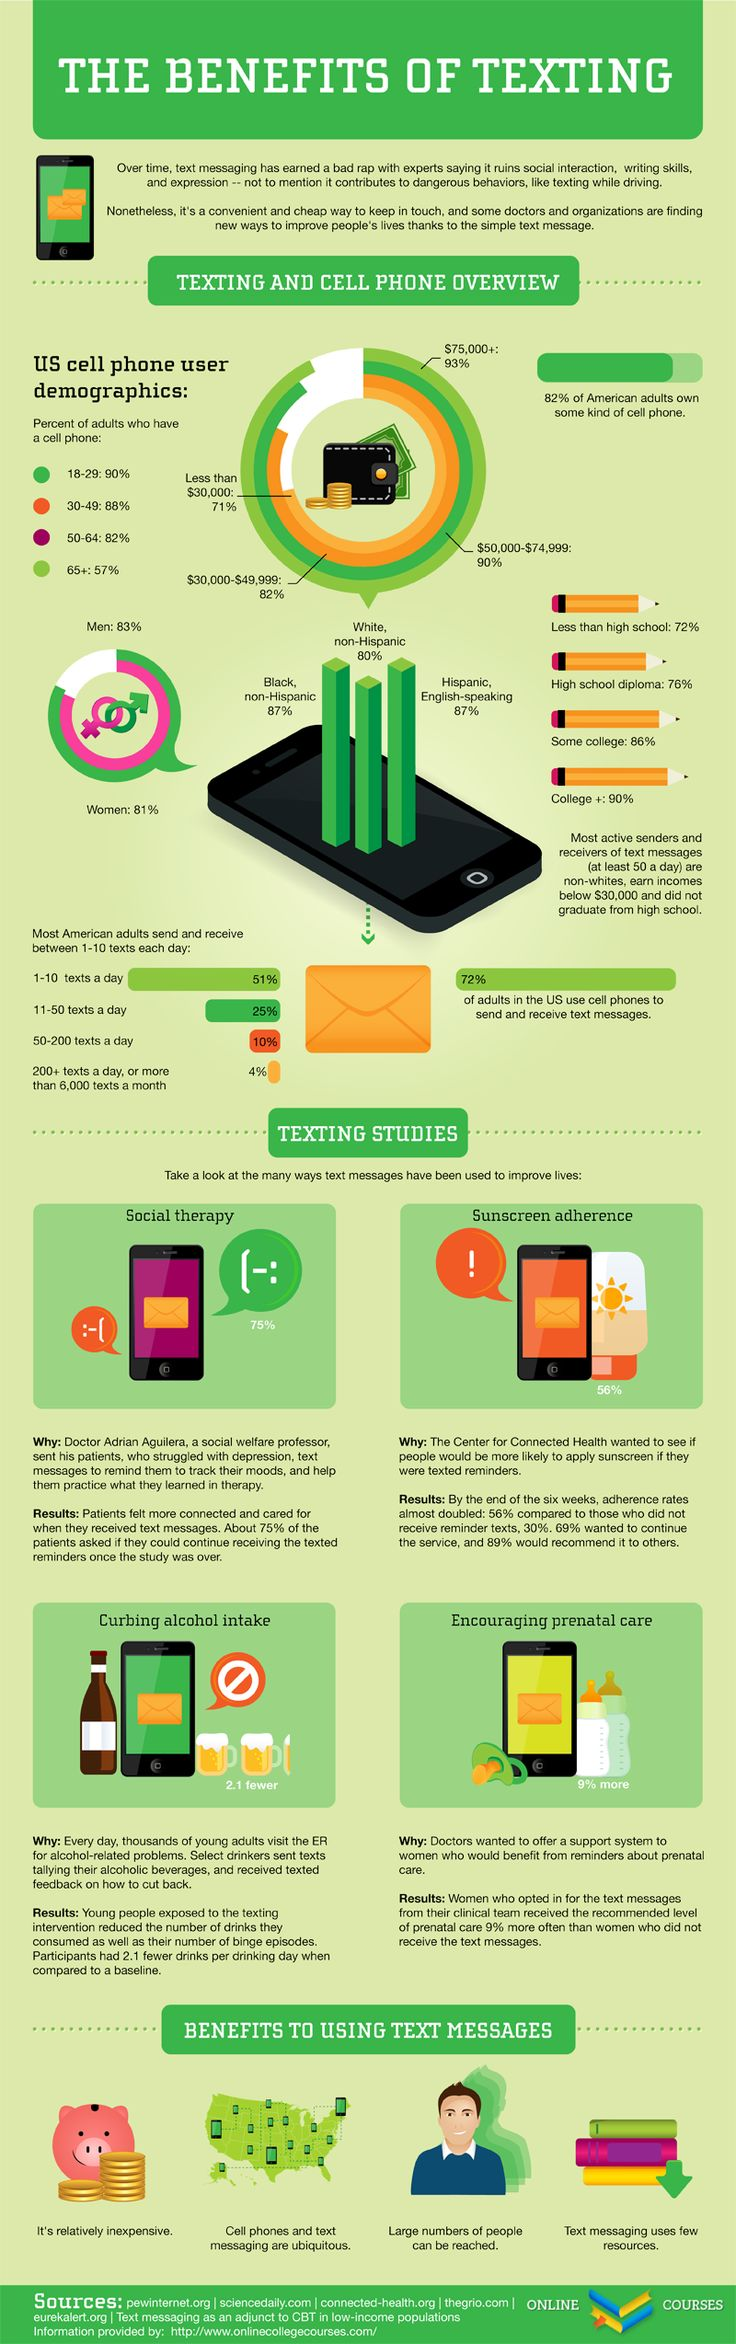 The Benefits of Texting   Visit our new infographic gallery at visualoop.com/